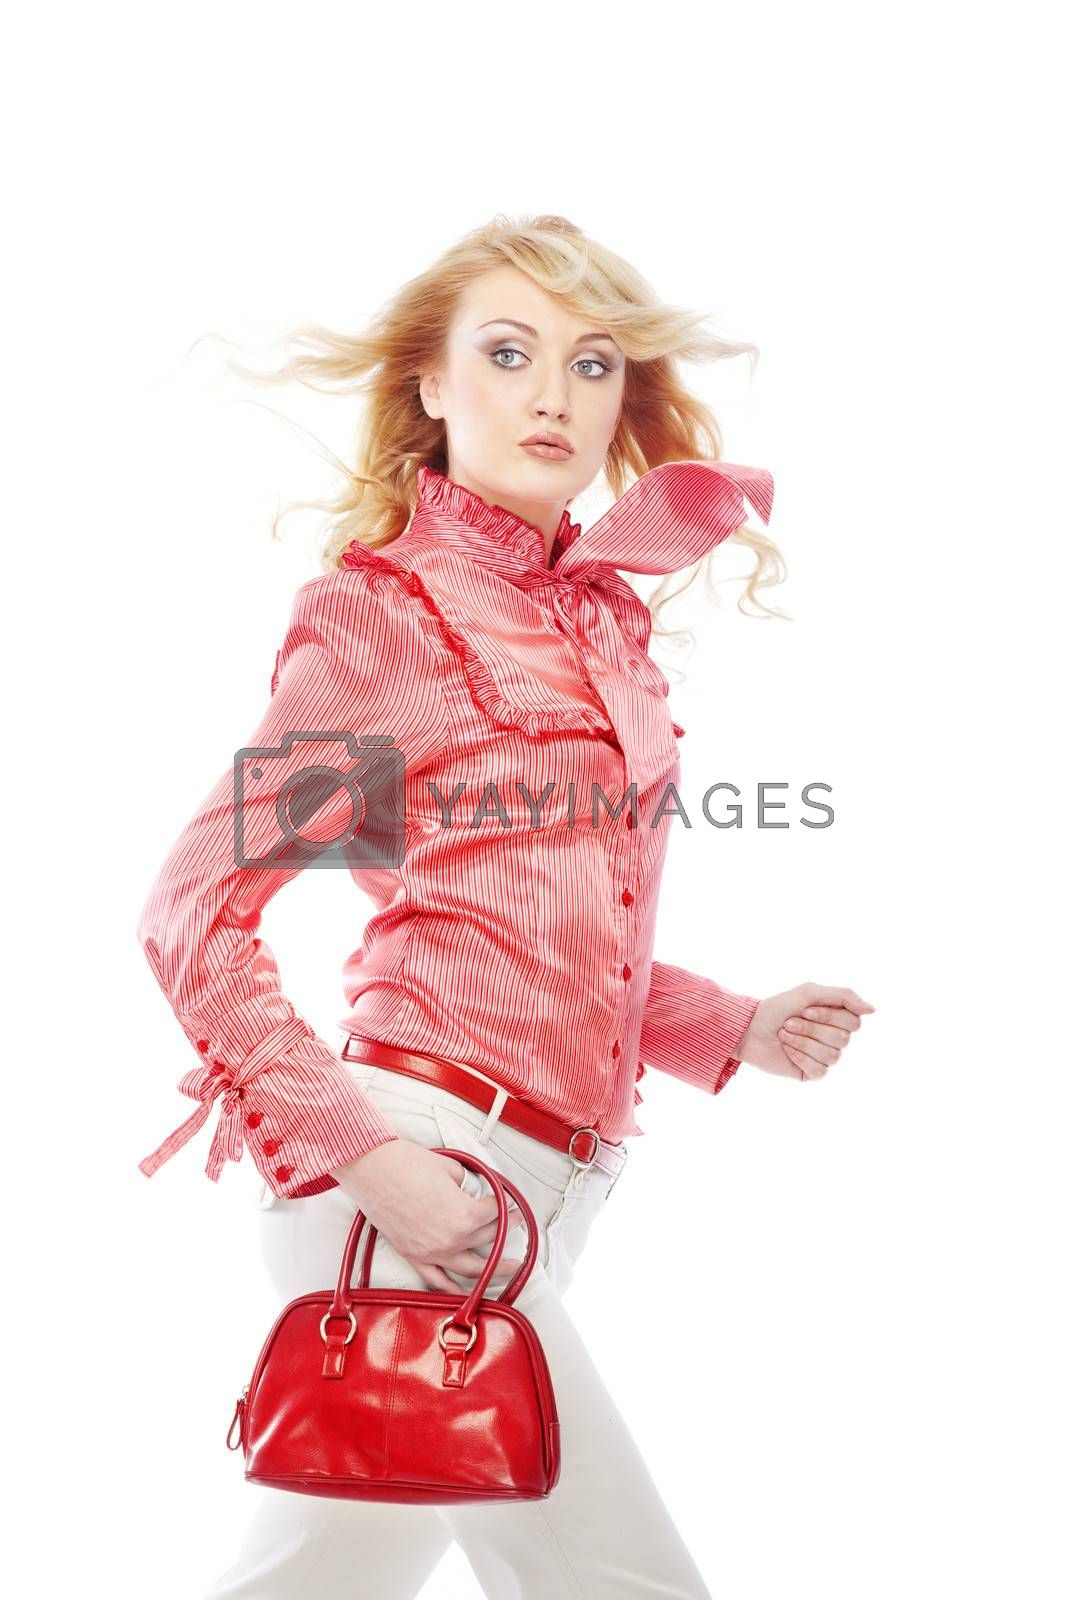 Moving lady in stylish clothes with red bag